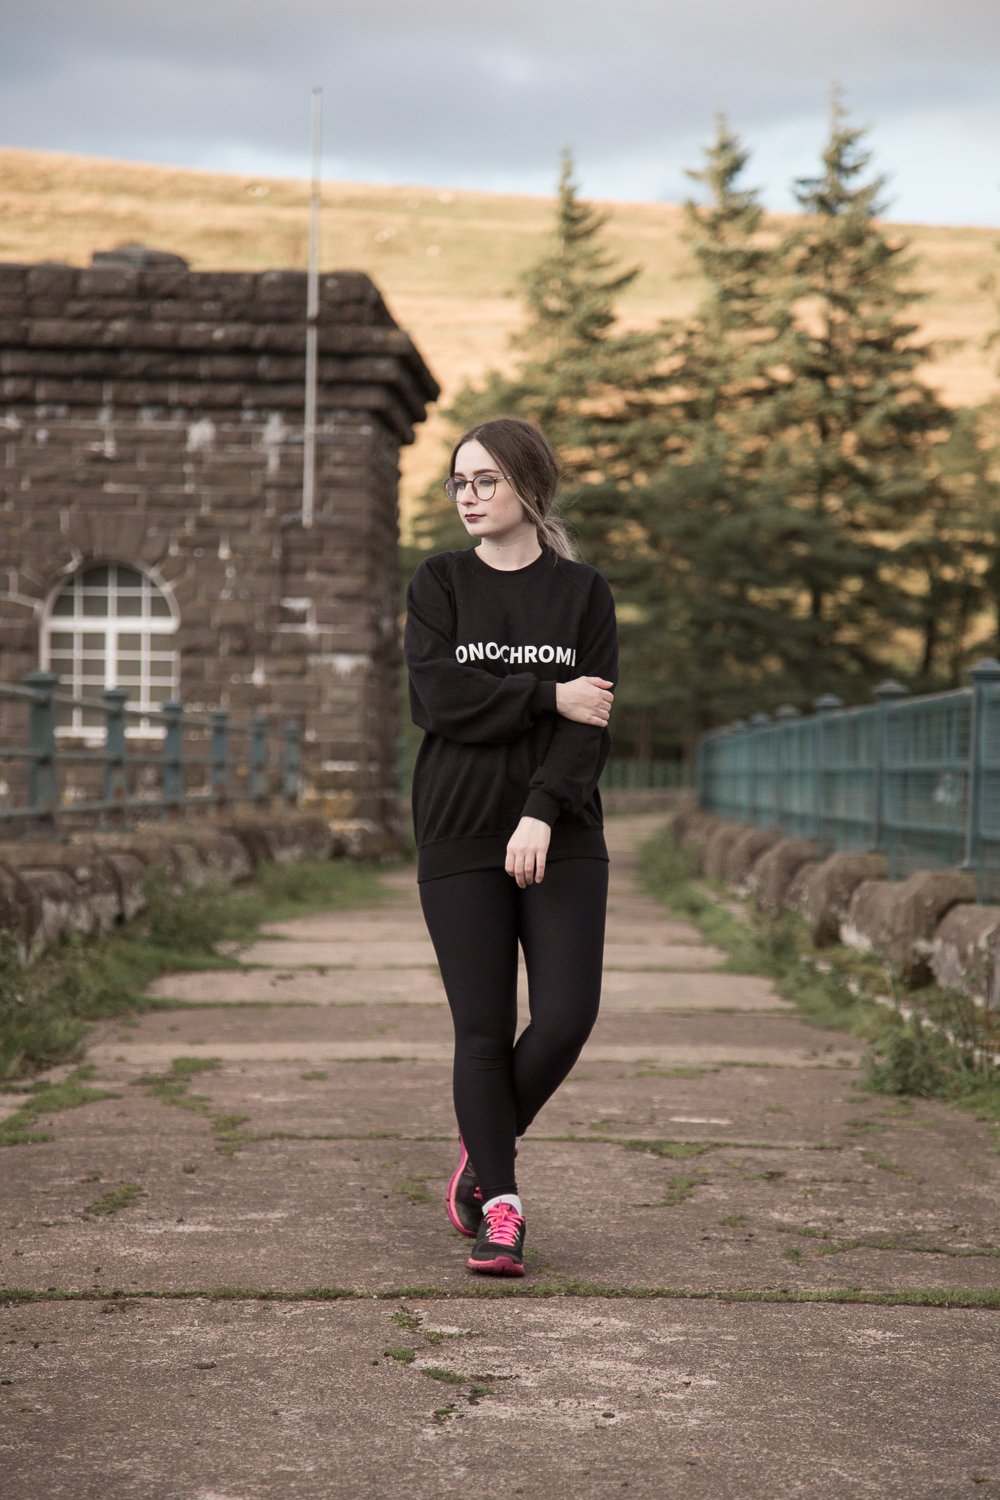 The Monochrome Slogan Sweatshirt OOTD